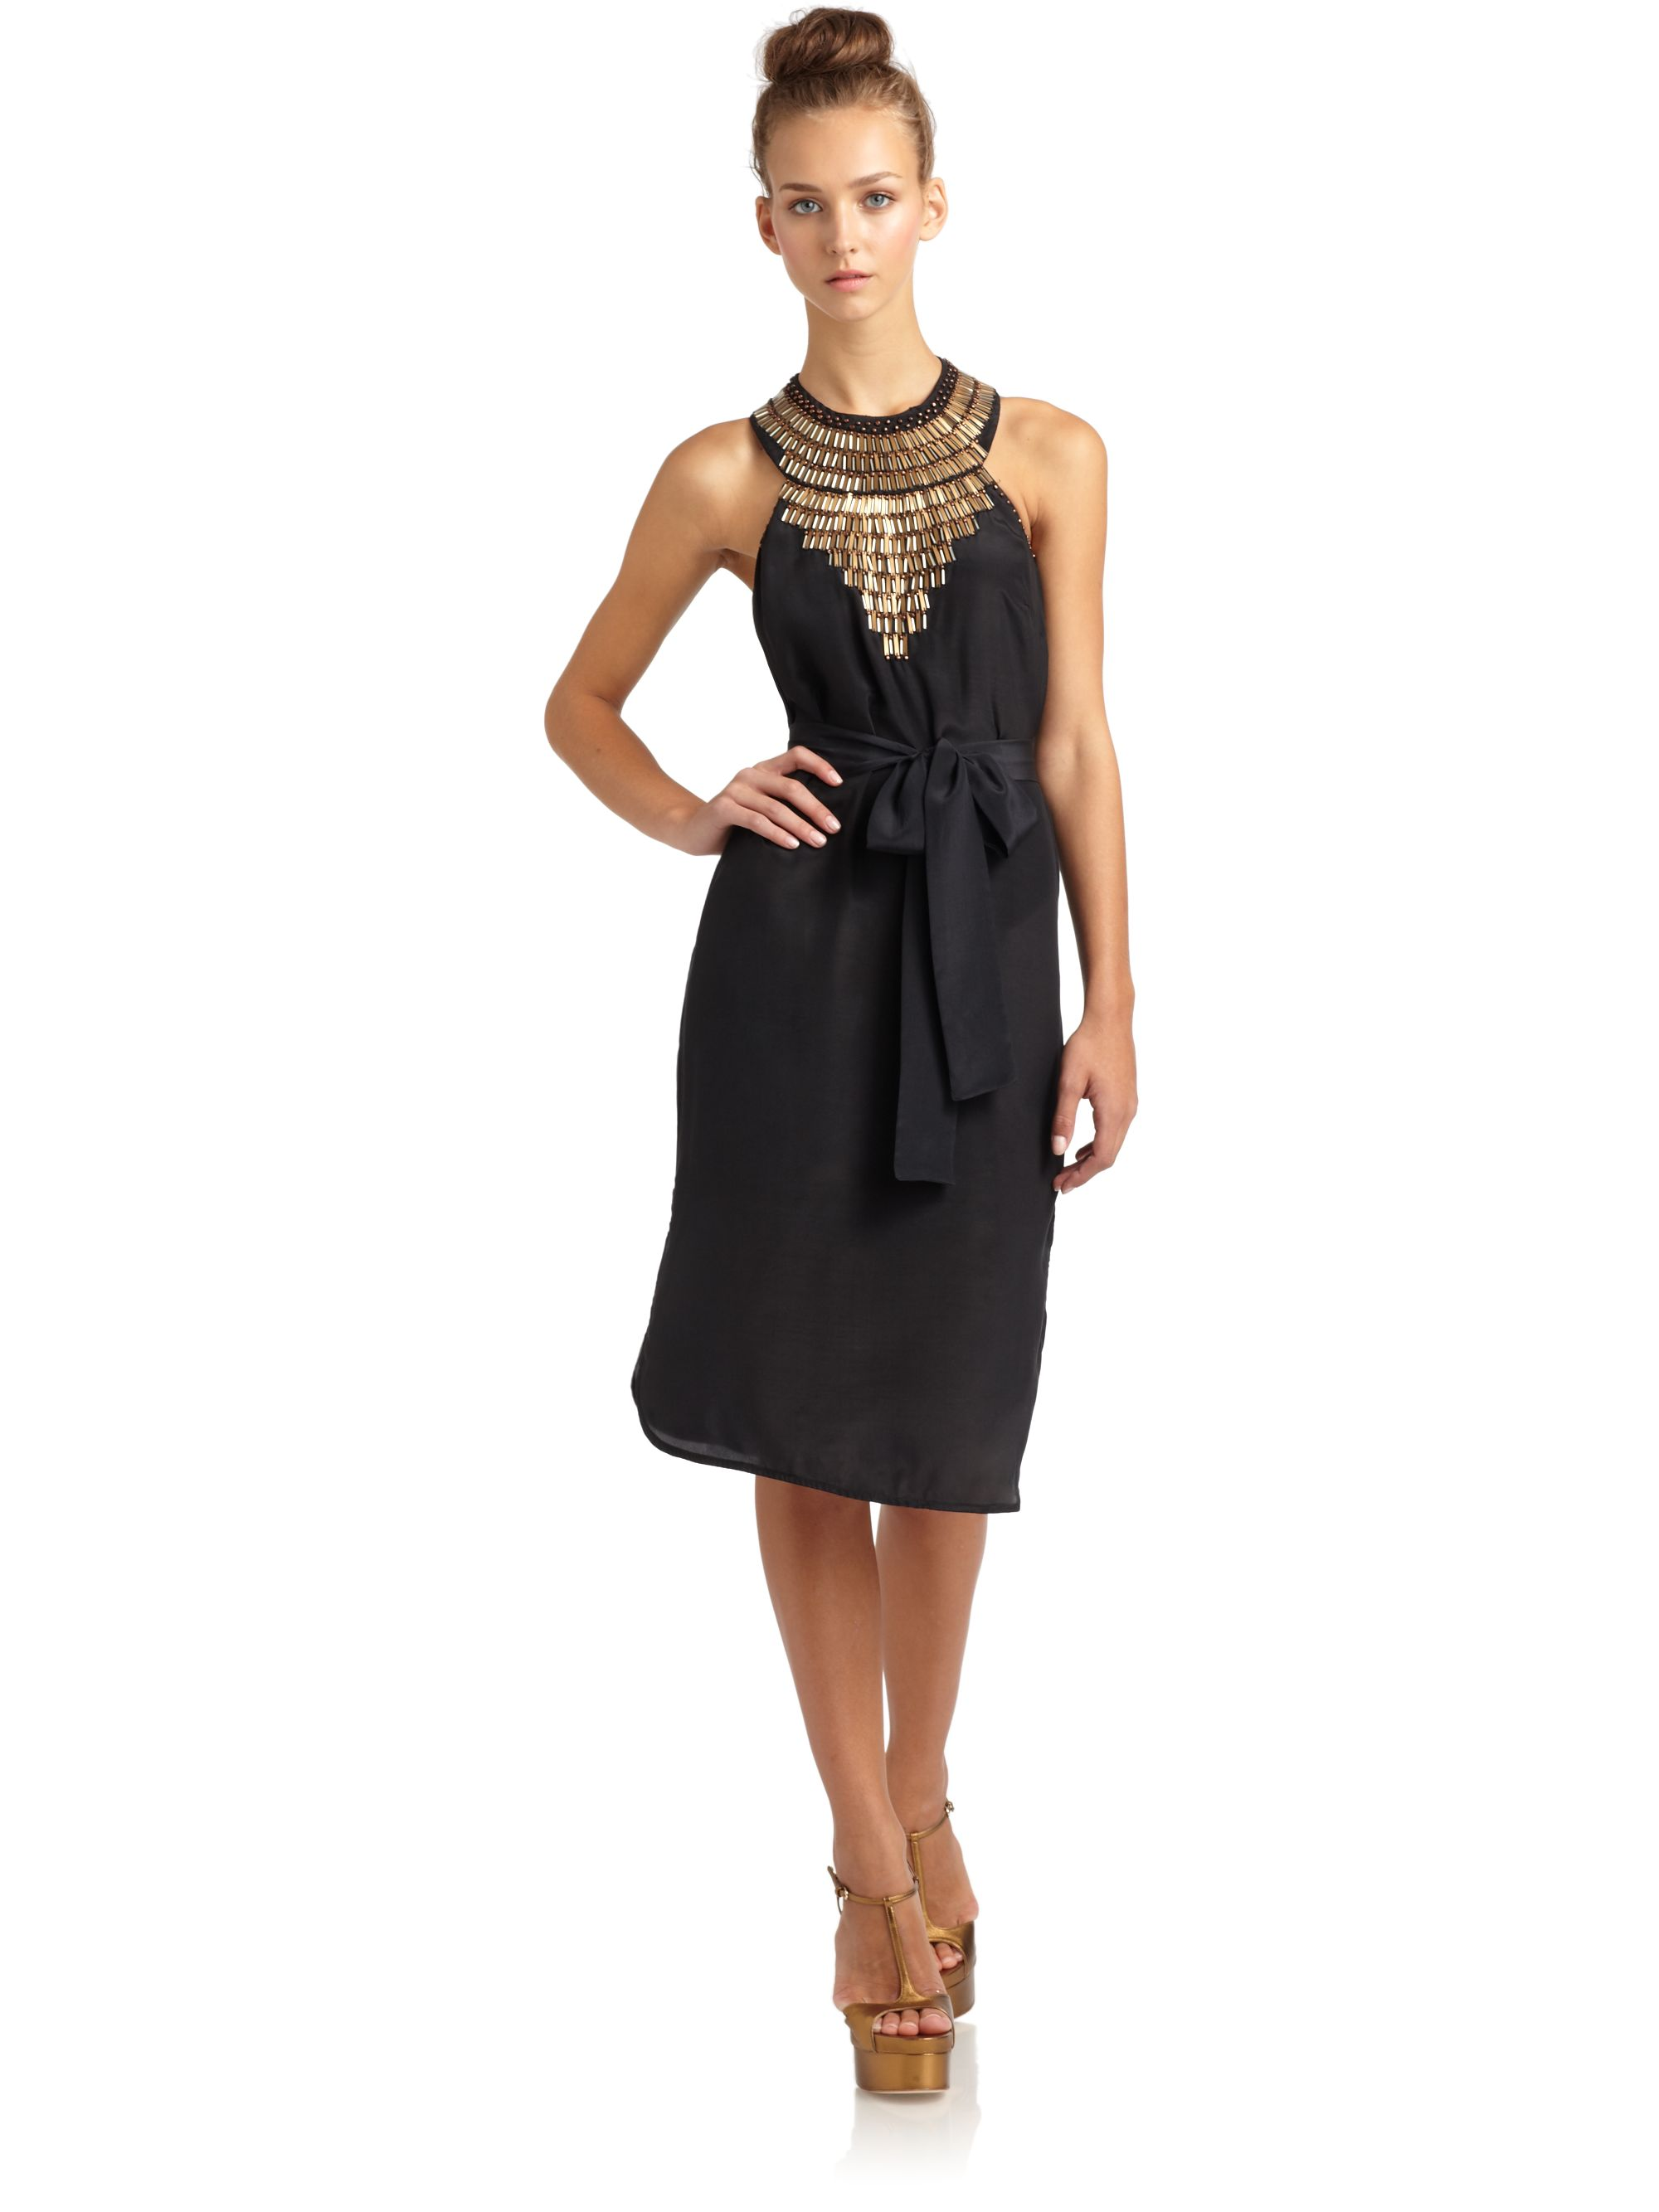 Black dress house of fraser -  French Connection Ombre Bark Dress House Of Fraser